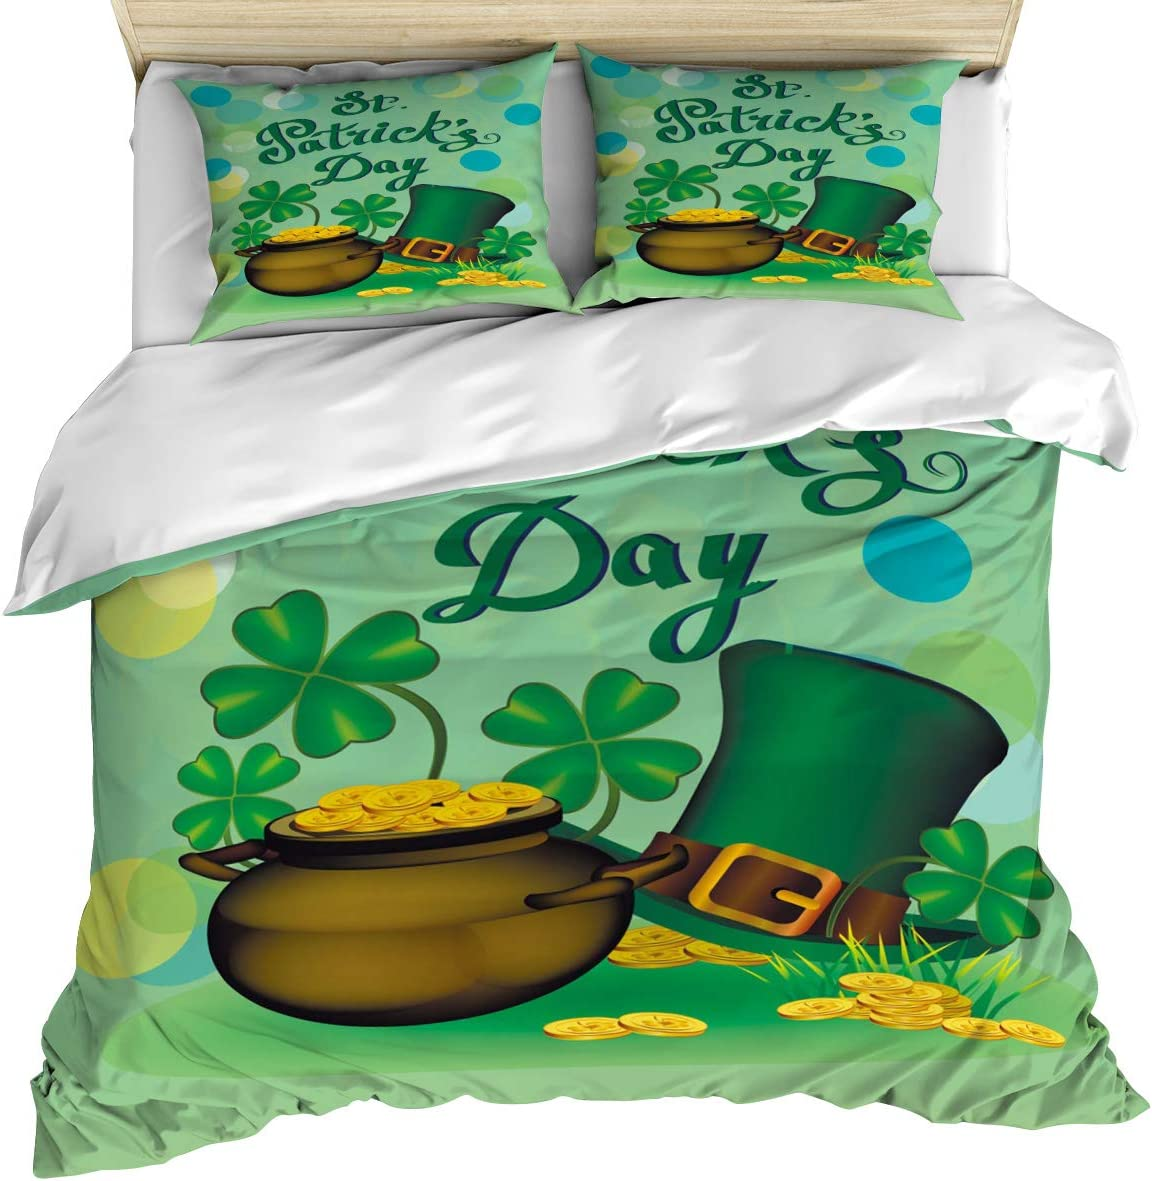 Quality inspection Luxury Bedding Duvet In stock Cover Queen Qu Gold Luck Clover Coins